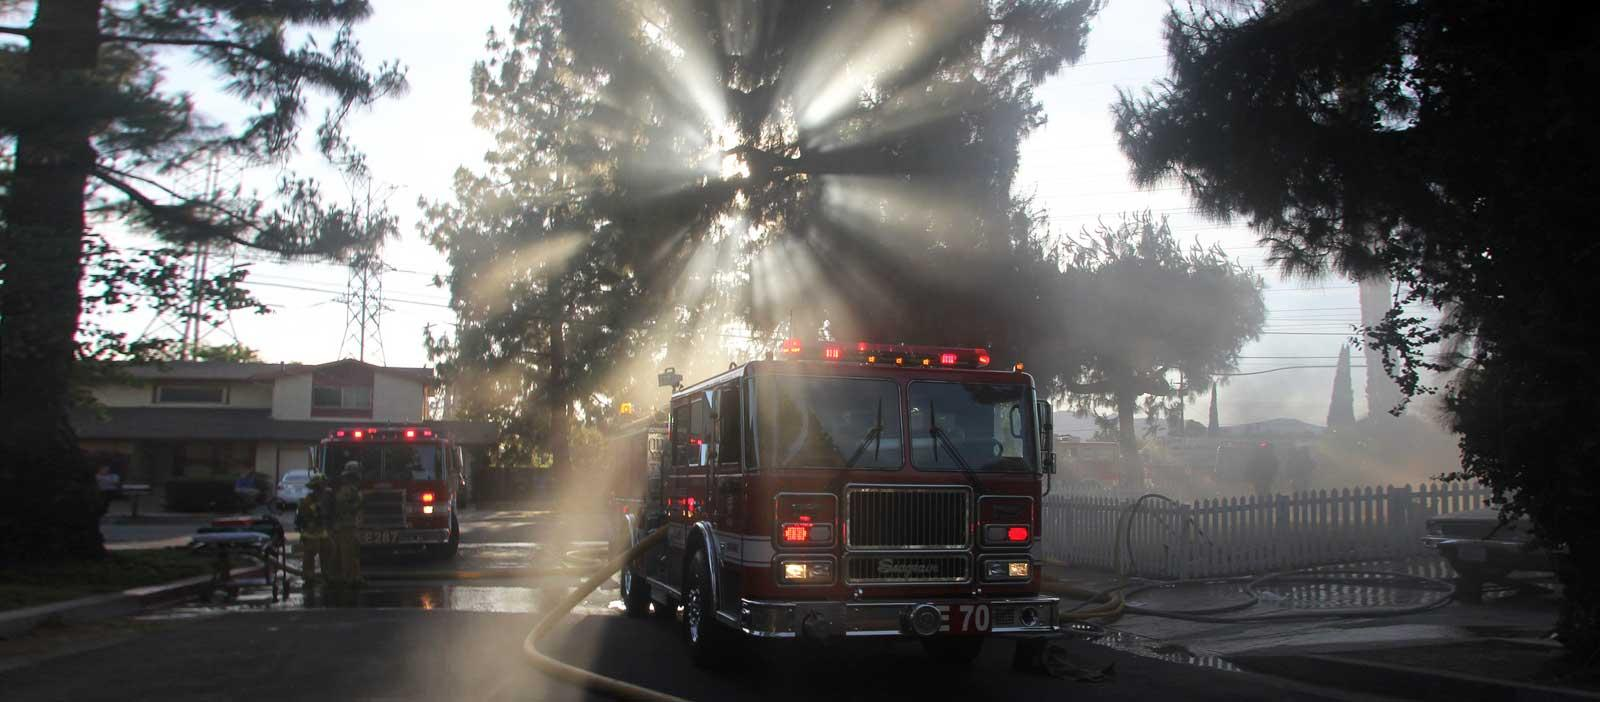 History Of The Black Firemen On The Los Angeles Fire: Los Angeles Fire Department